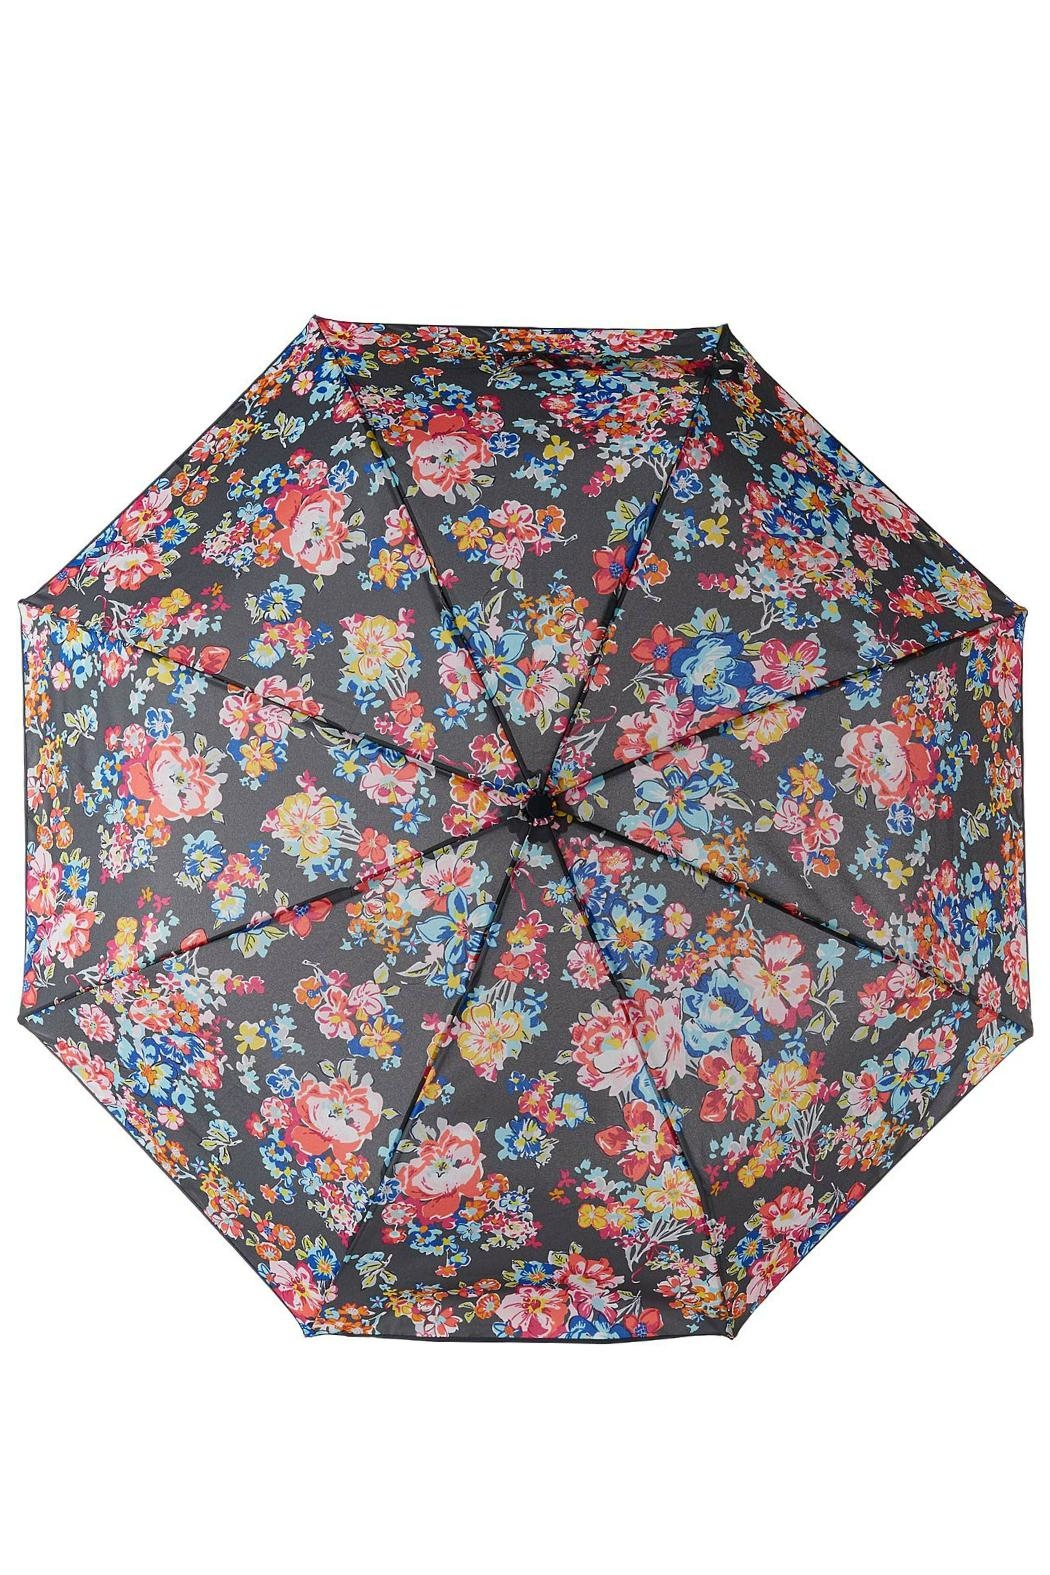 Vera Bradley Pretty Posies Umbrella - Main Image